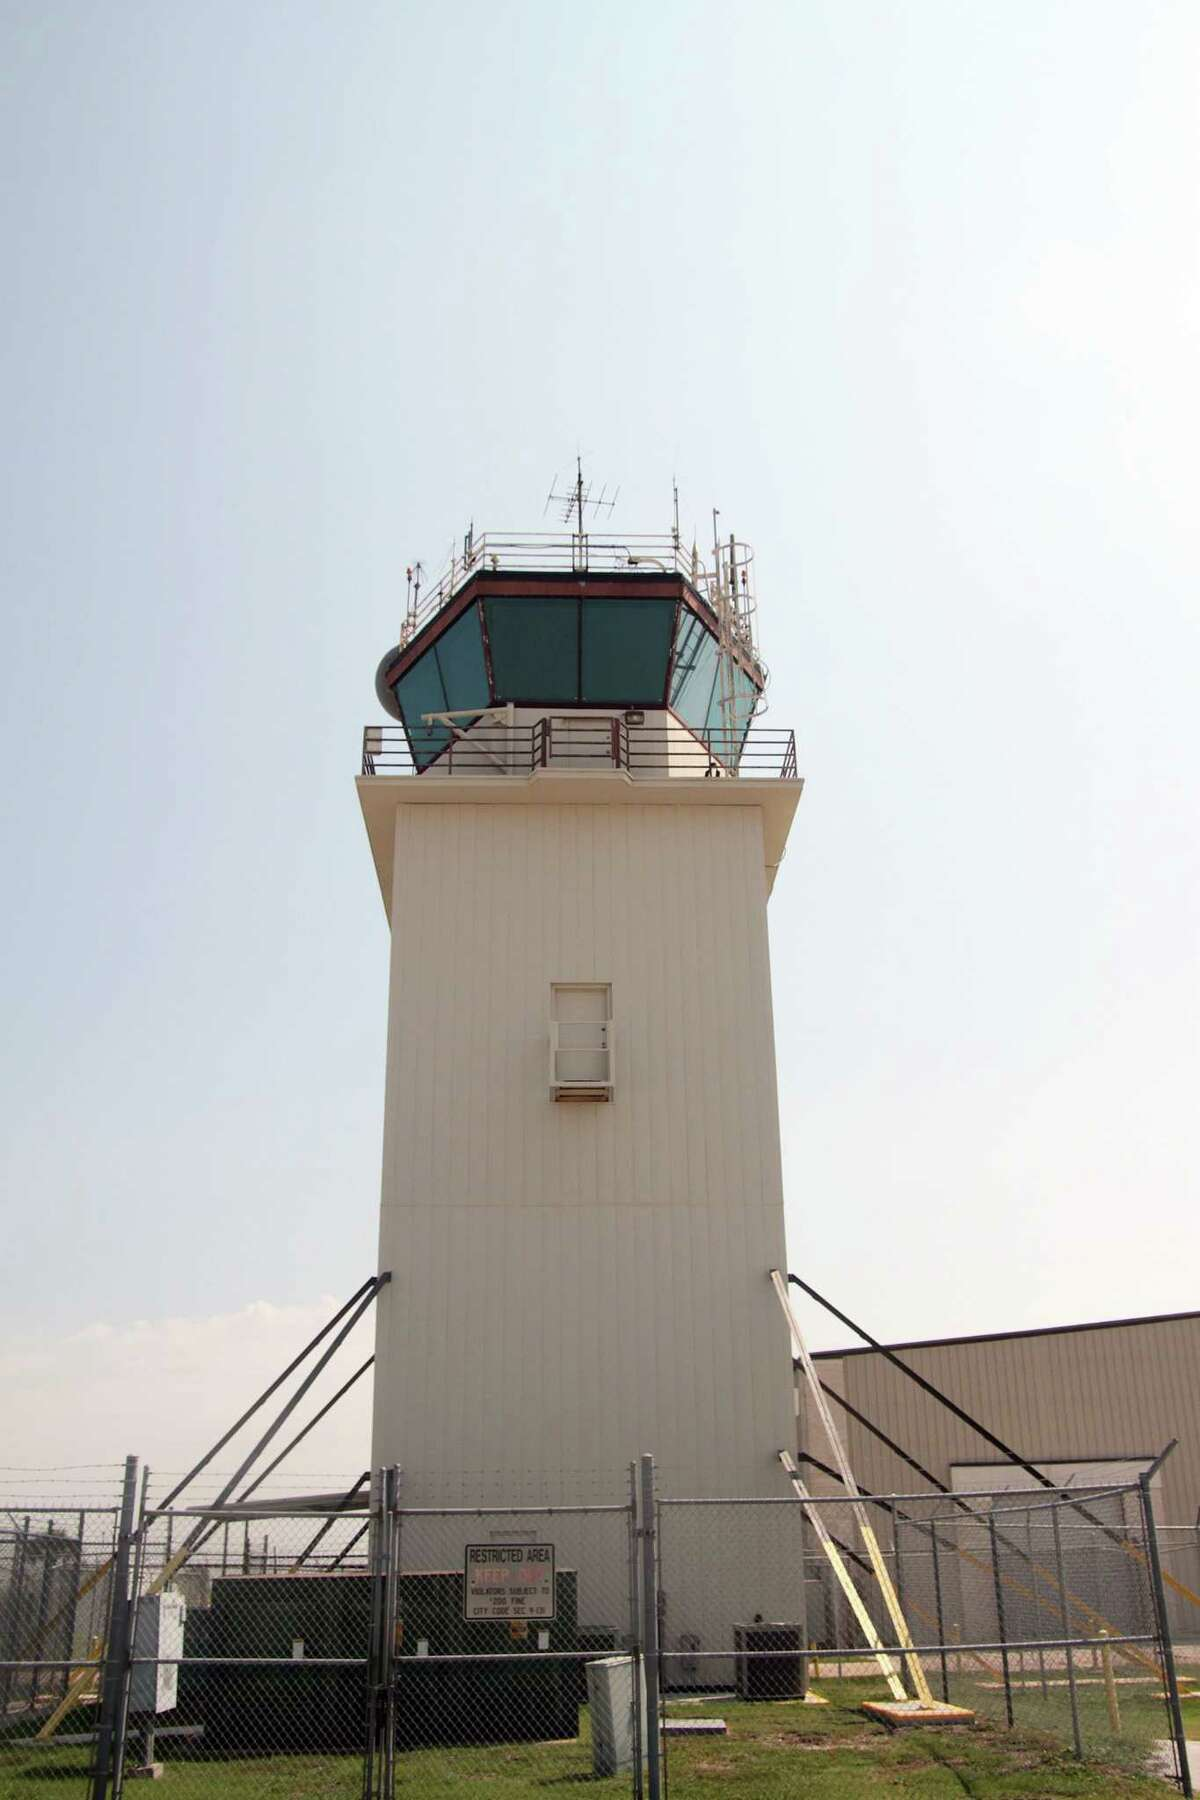 The original control tower at Ellington Field, still in operation, will be retired once the new one is built. Photo by Pin Lim.